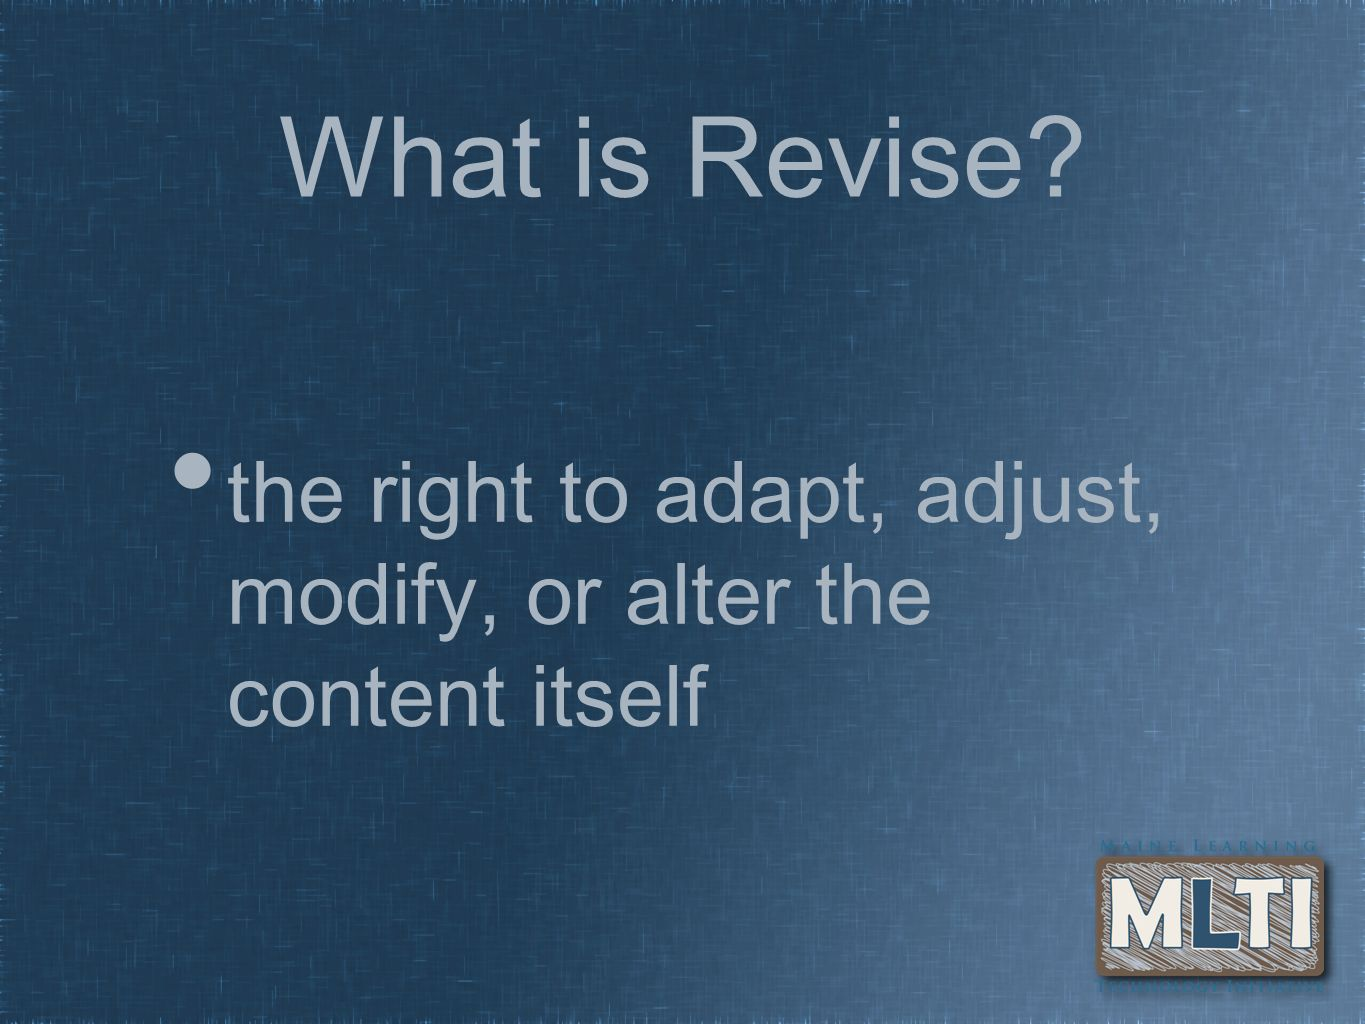 What is Revise? the right to adapt, adjust, modify, or alter the content itself